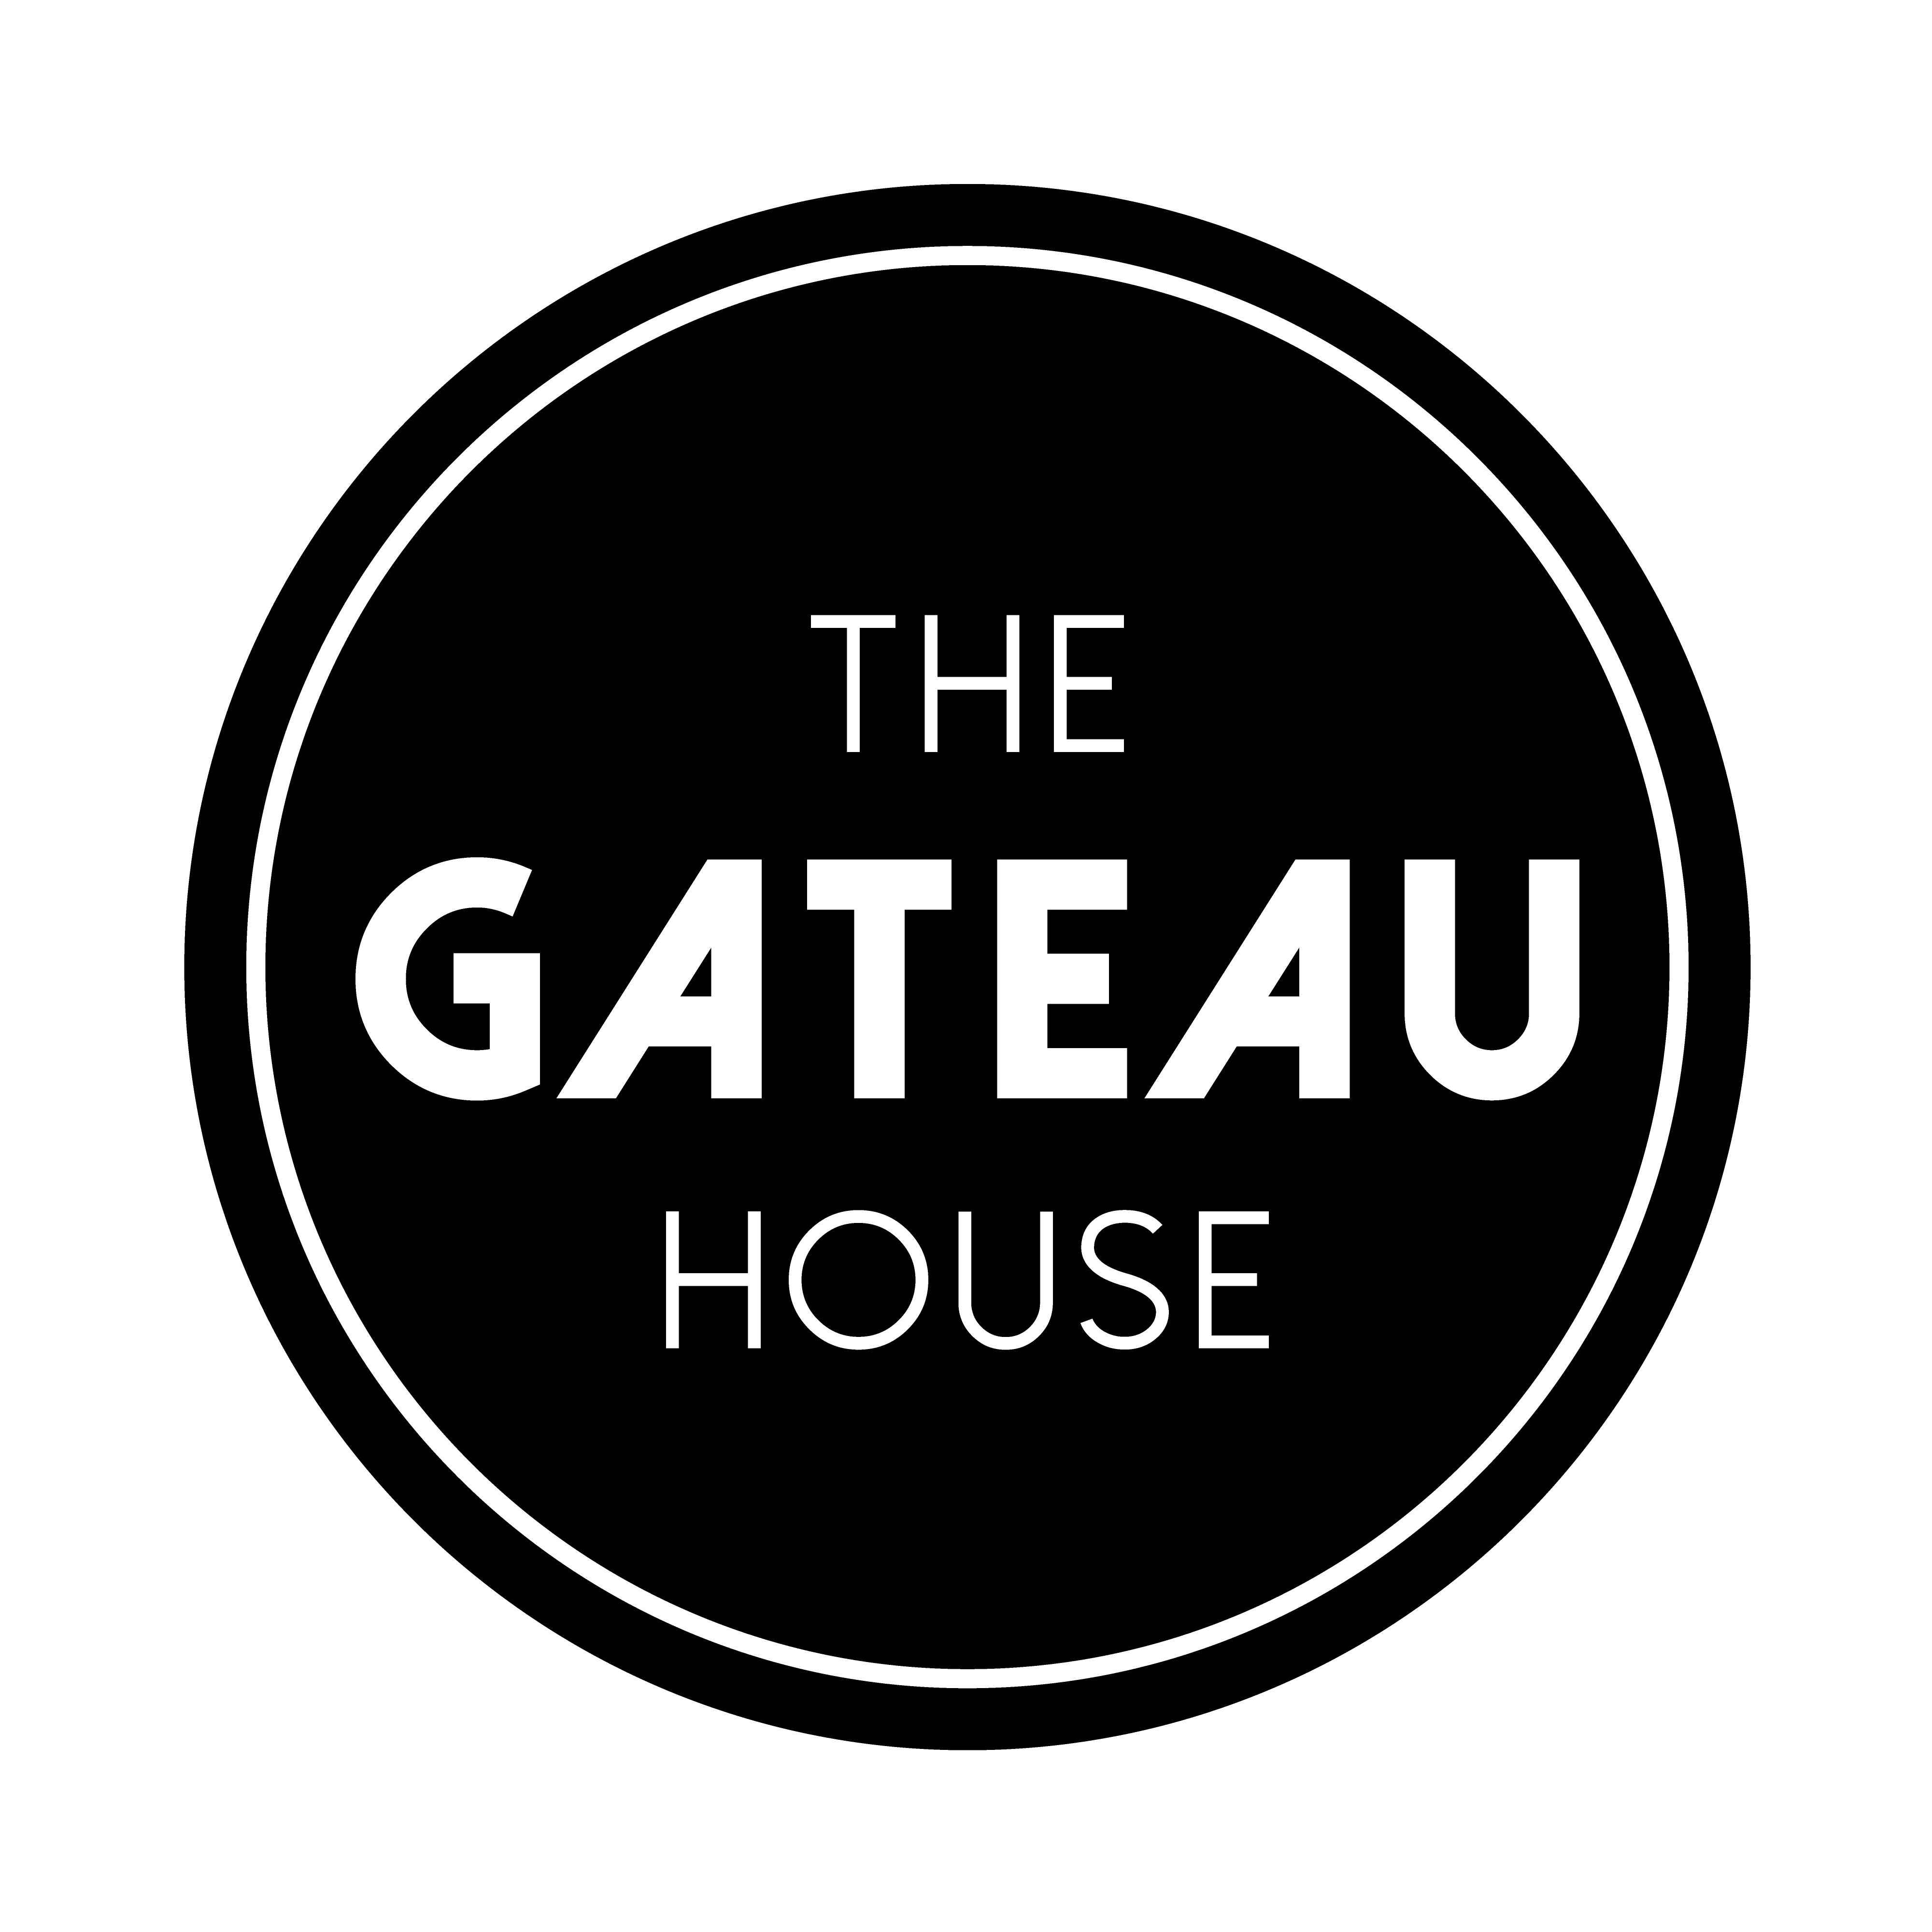 The Gateau House